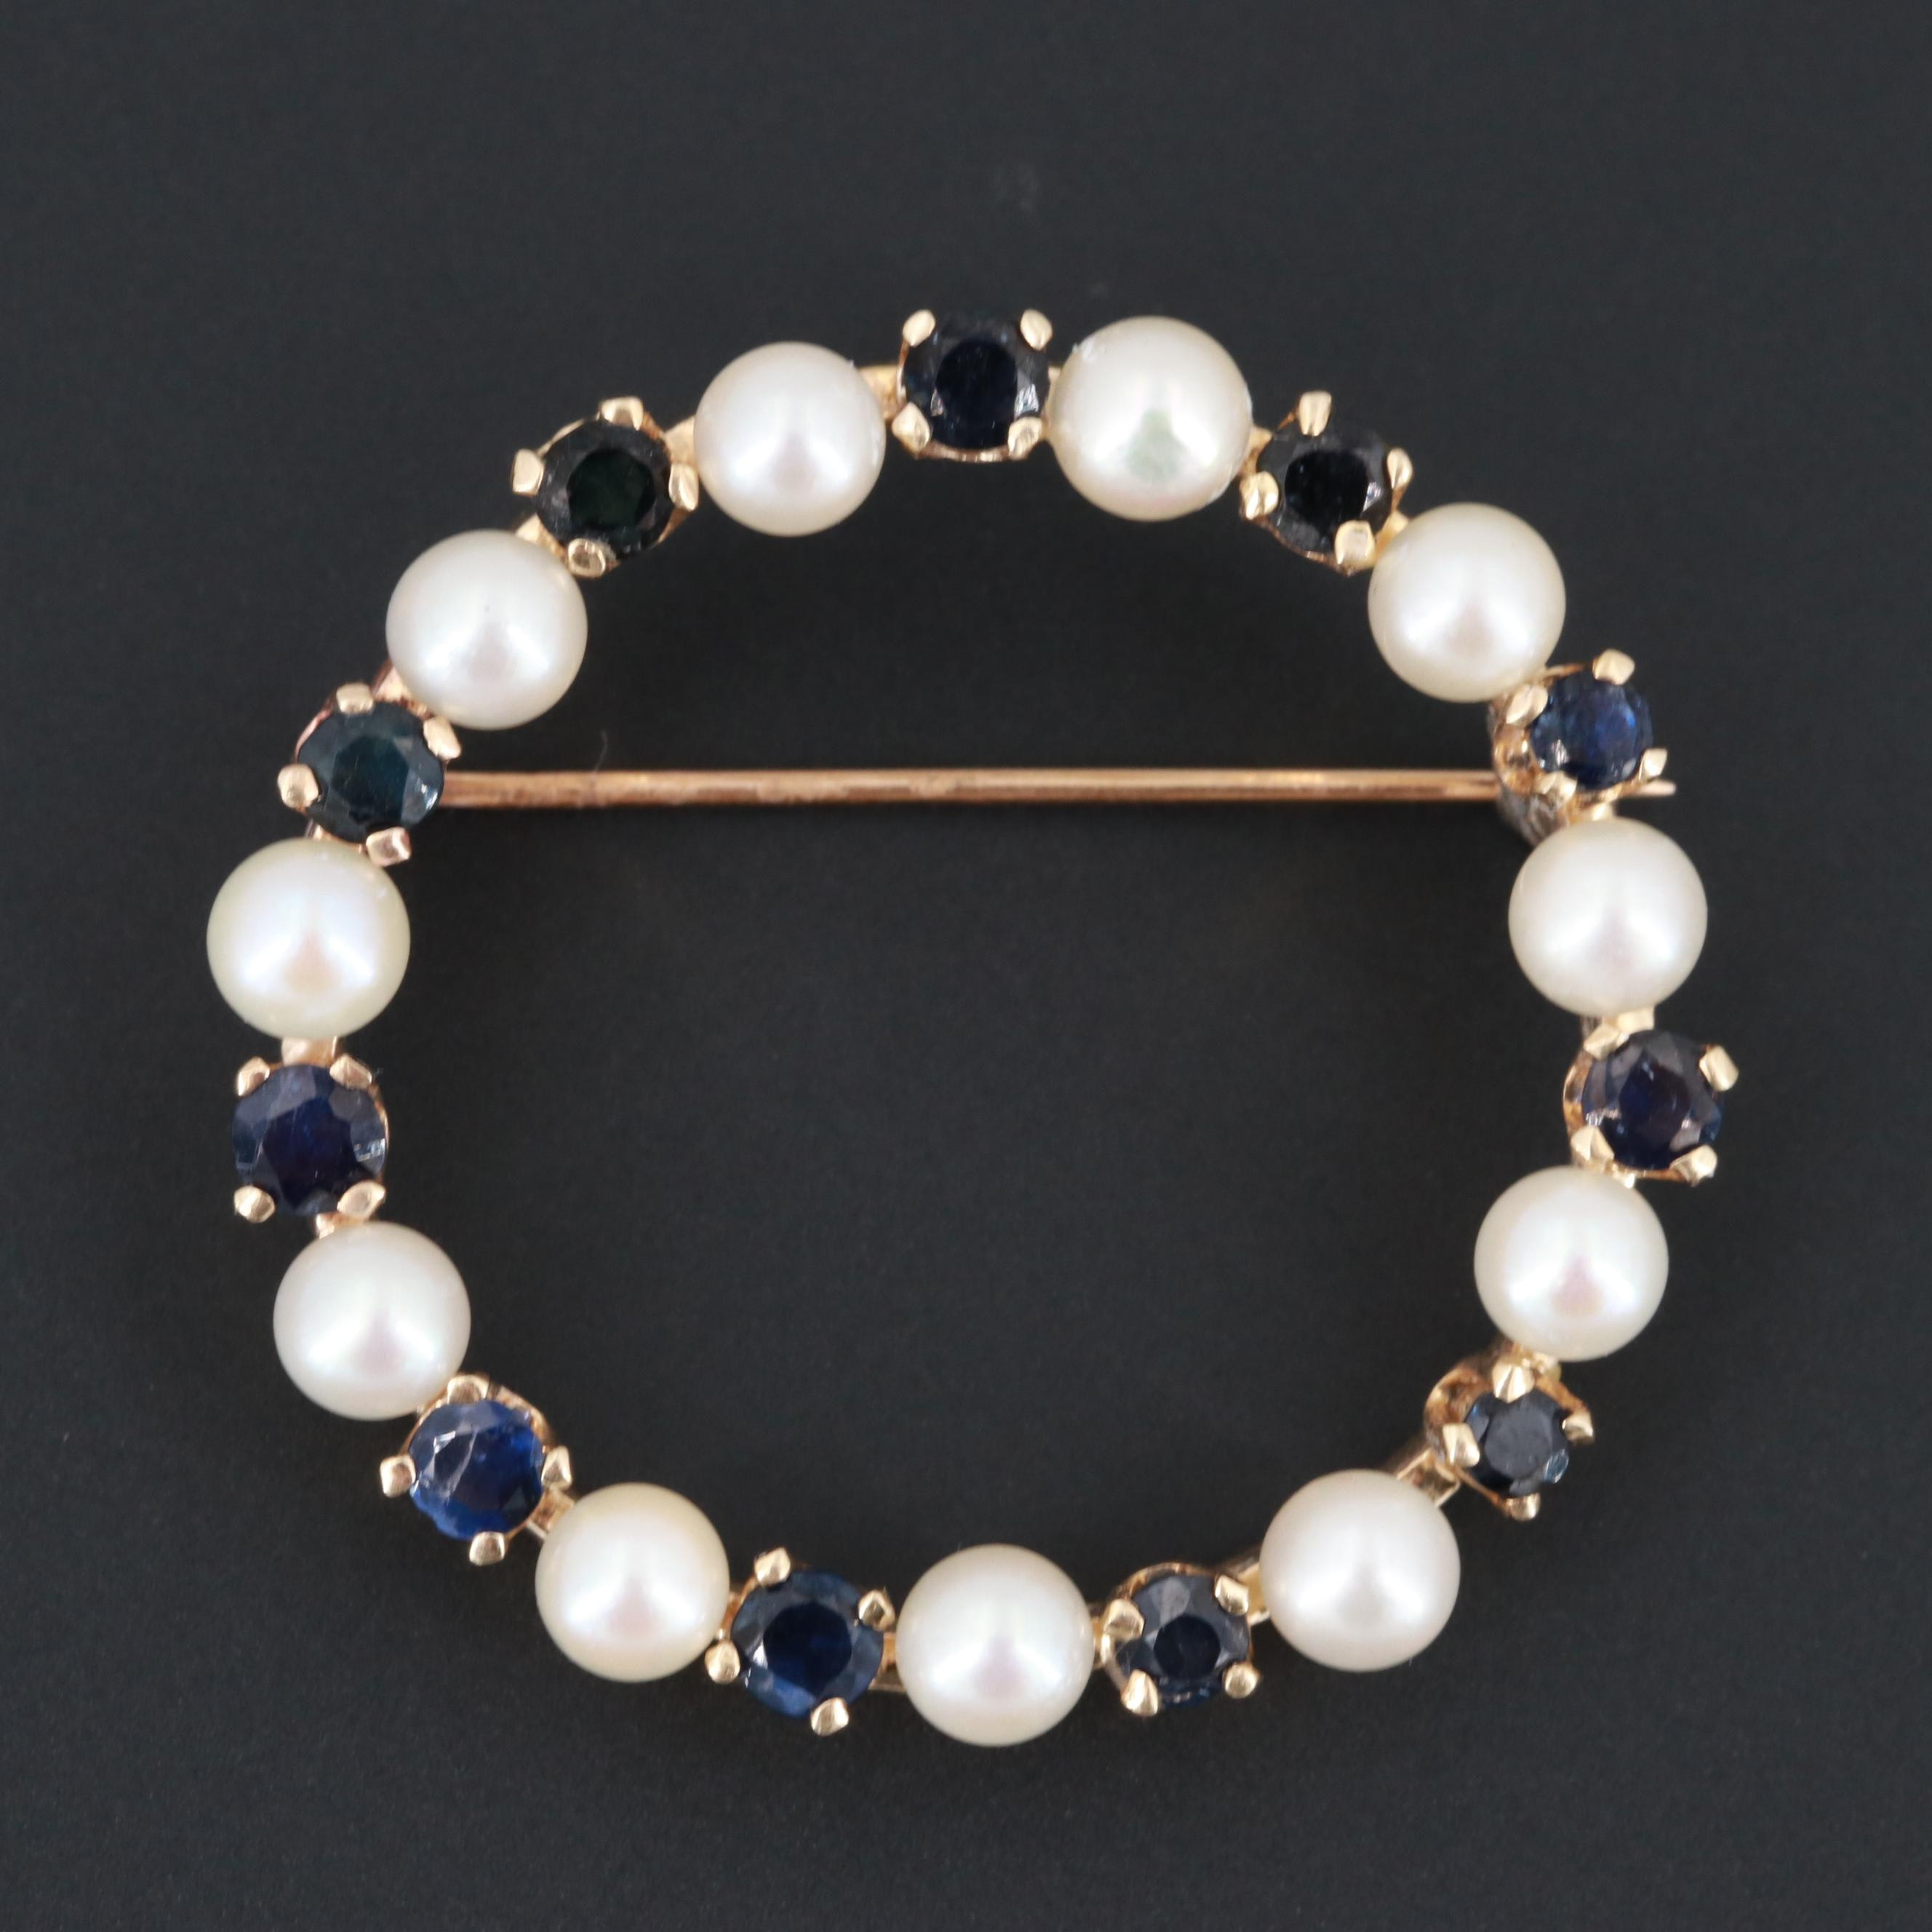 14K Yellow Gold Blue Sapphire and Cultured Pearls Brooch